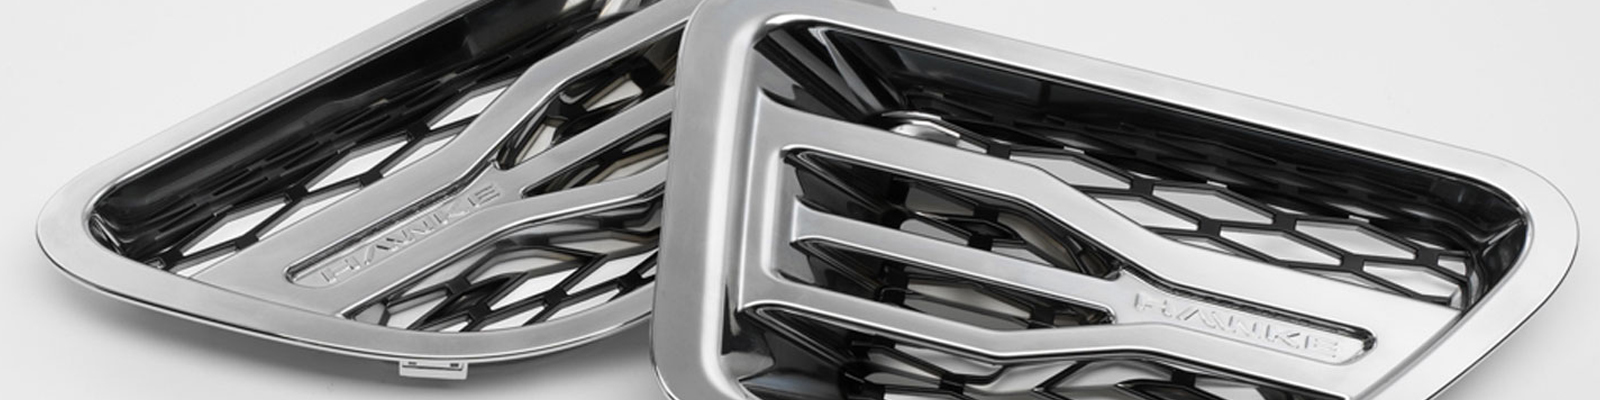 Vent & Grille Styling